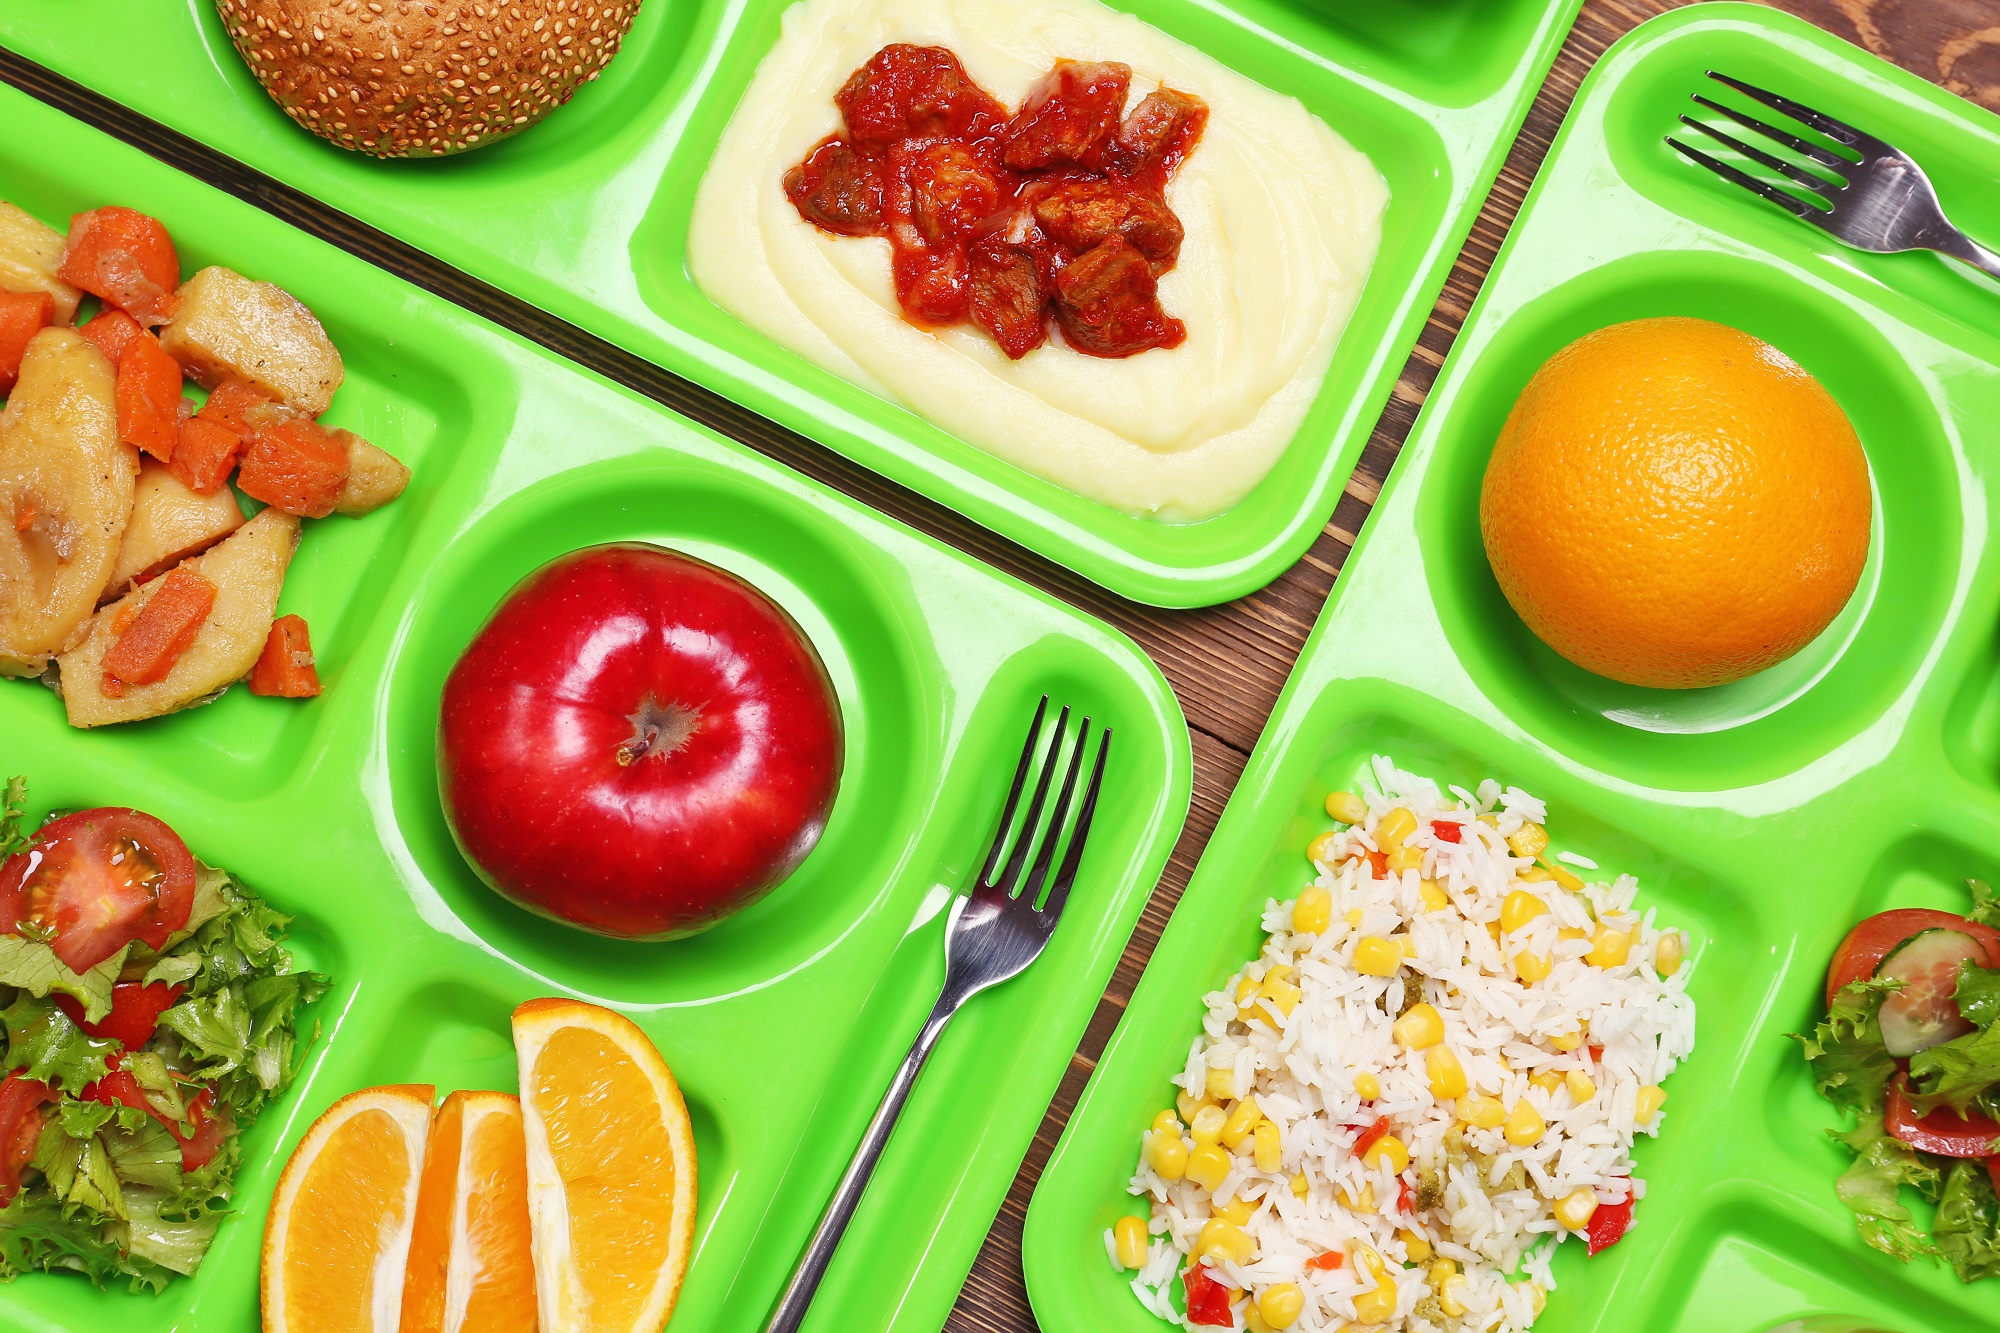 How to Keep Your Child With Food Allergies Safe at School